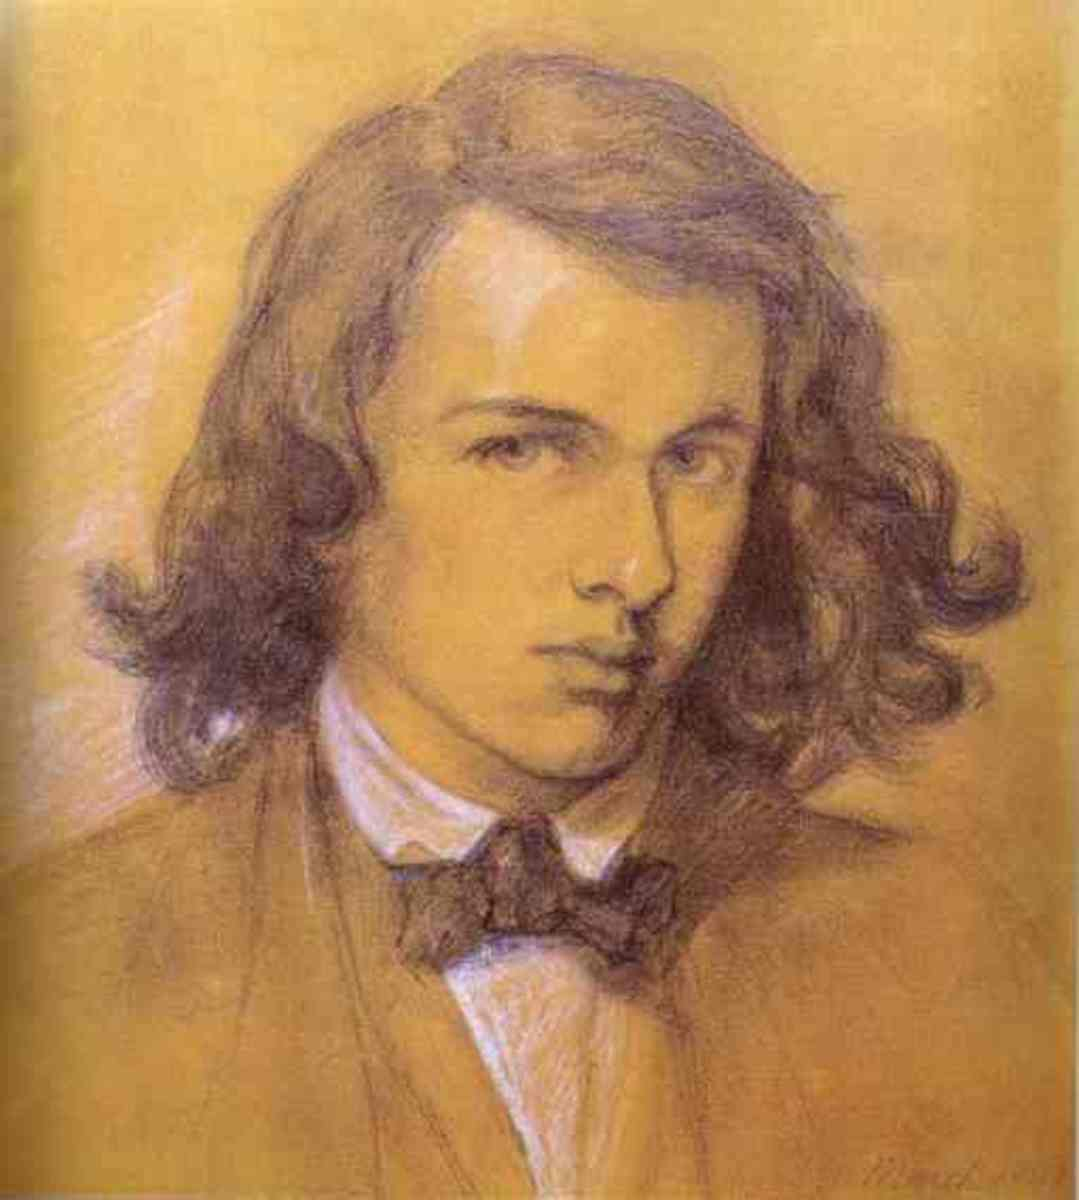 Self-portrait painted in 1847.